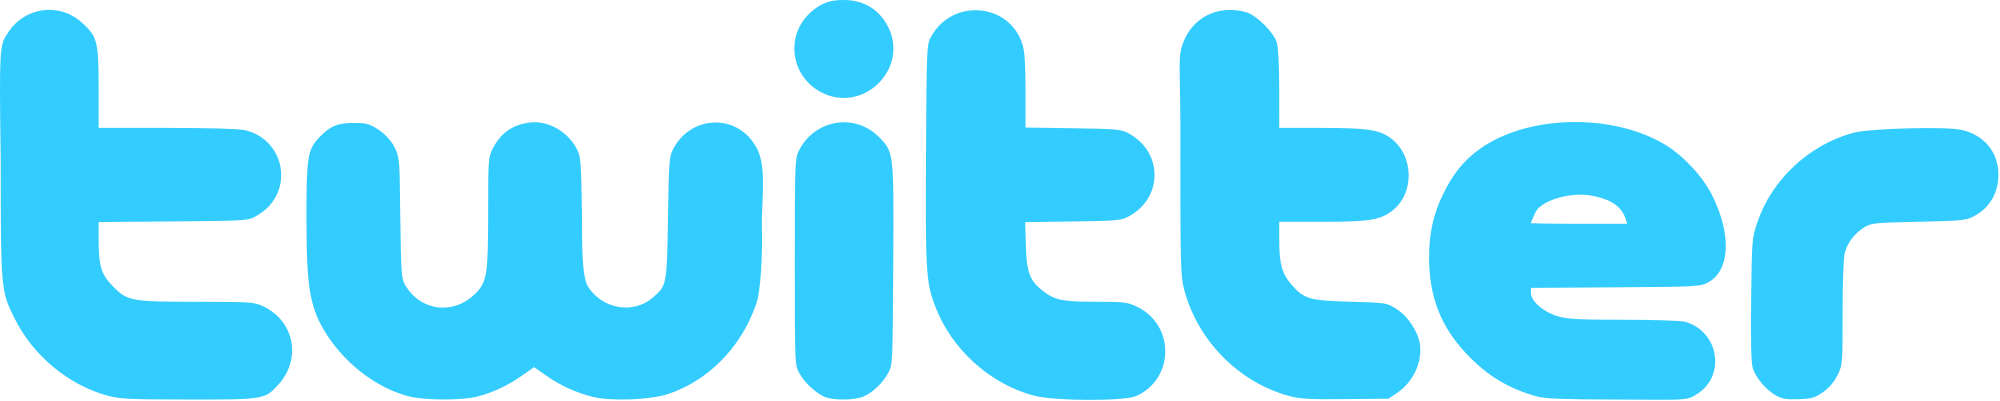 Twitter Logo PNG Image With Transparent Background - Twitter PNG Logo